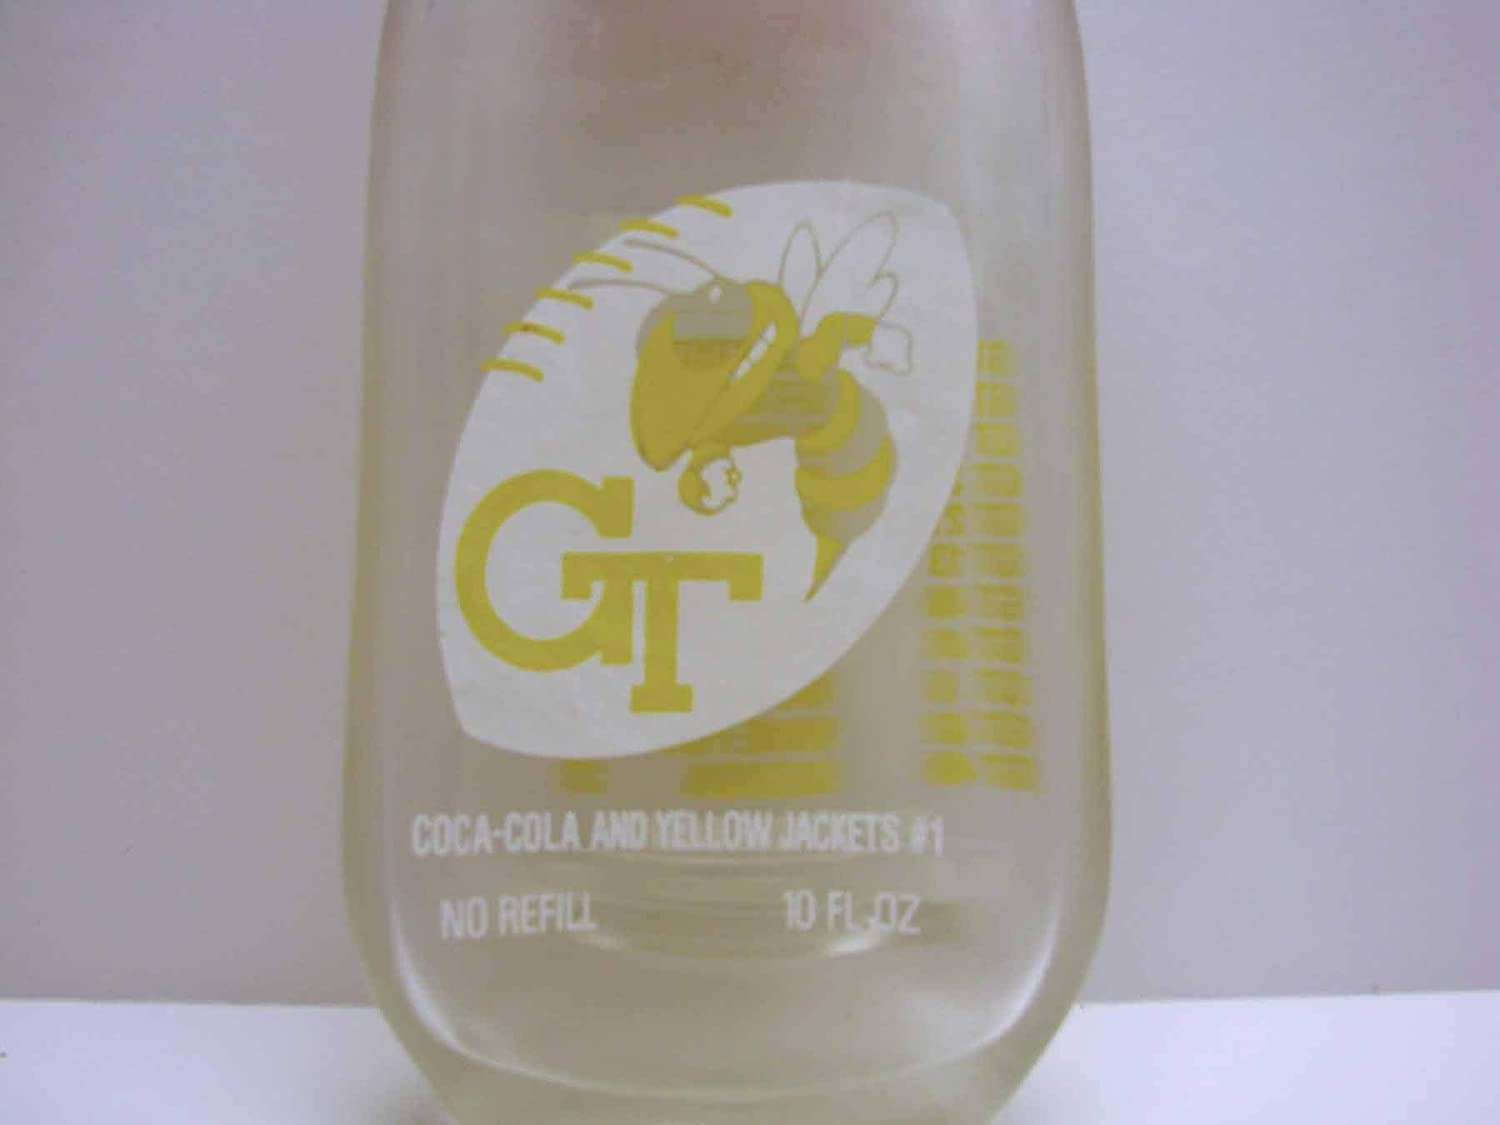 Georgia Tech Yellow Jackets 1990 National Football Champions Coke Bottle Display or Spoon Rest